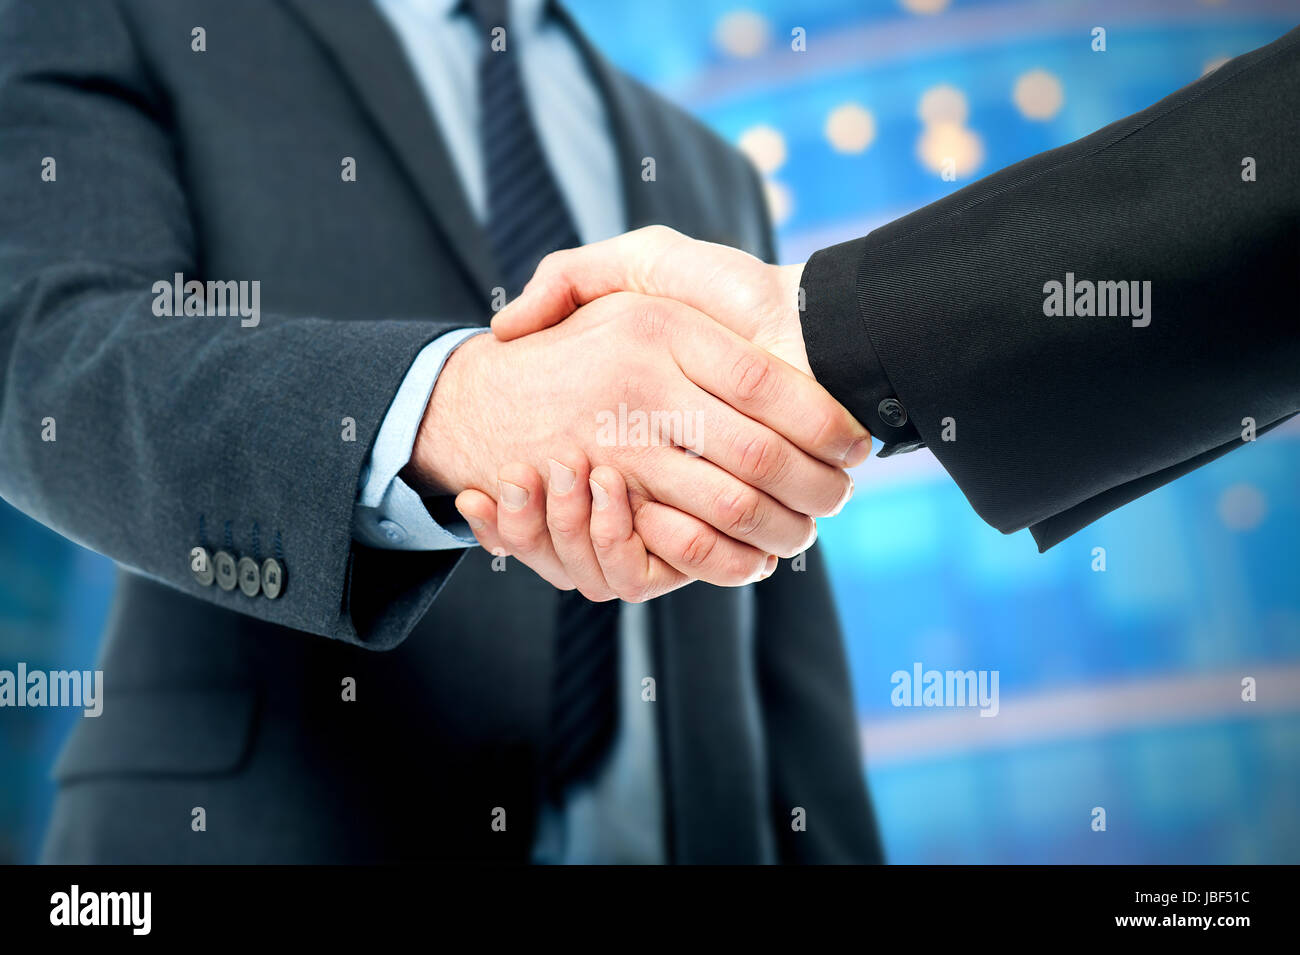 Business handshake, the deal Is finalized - Stock Image